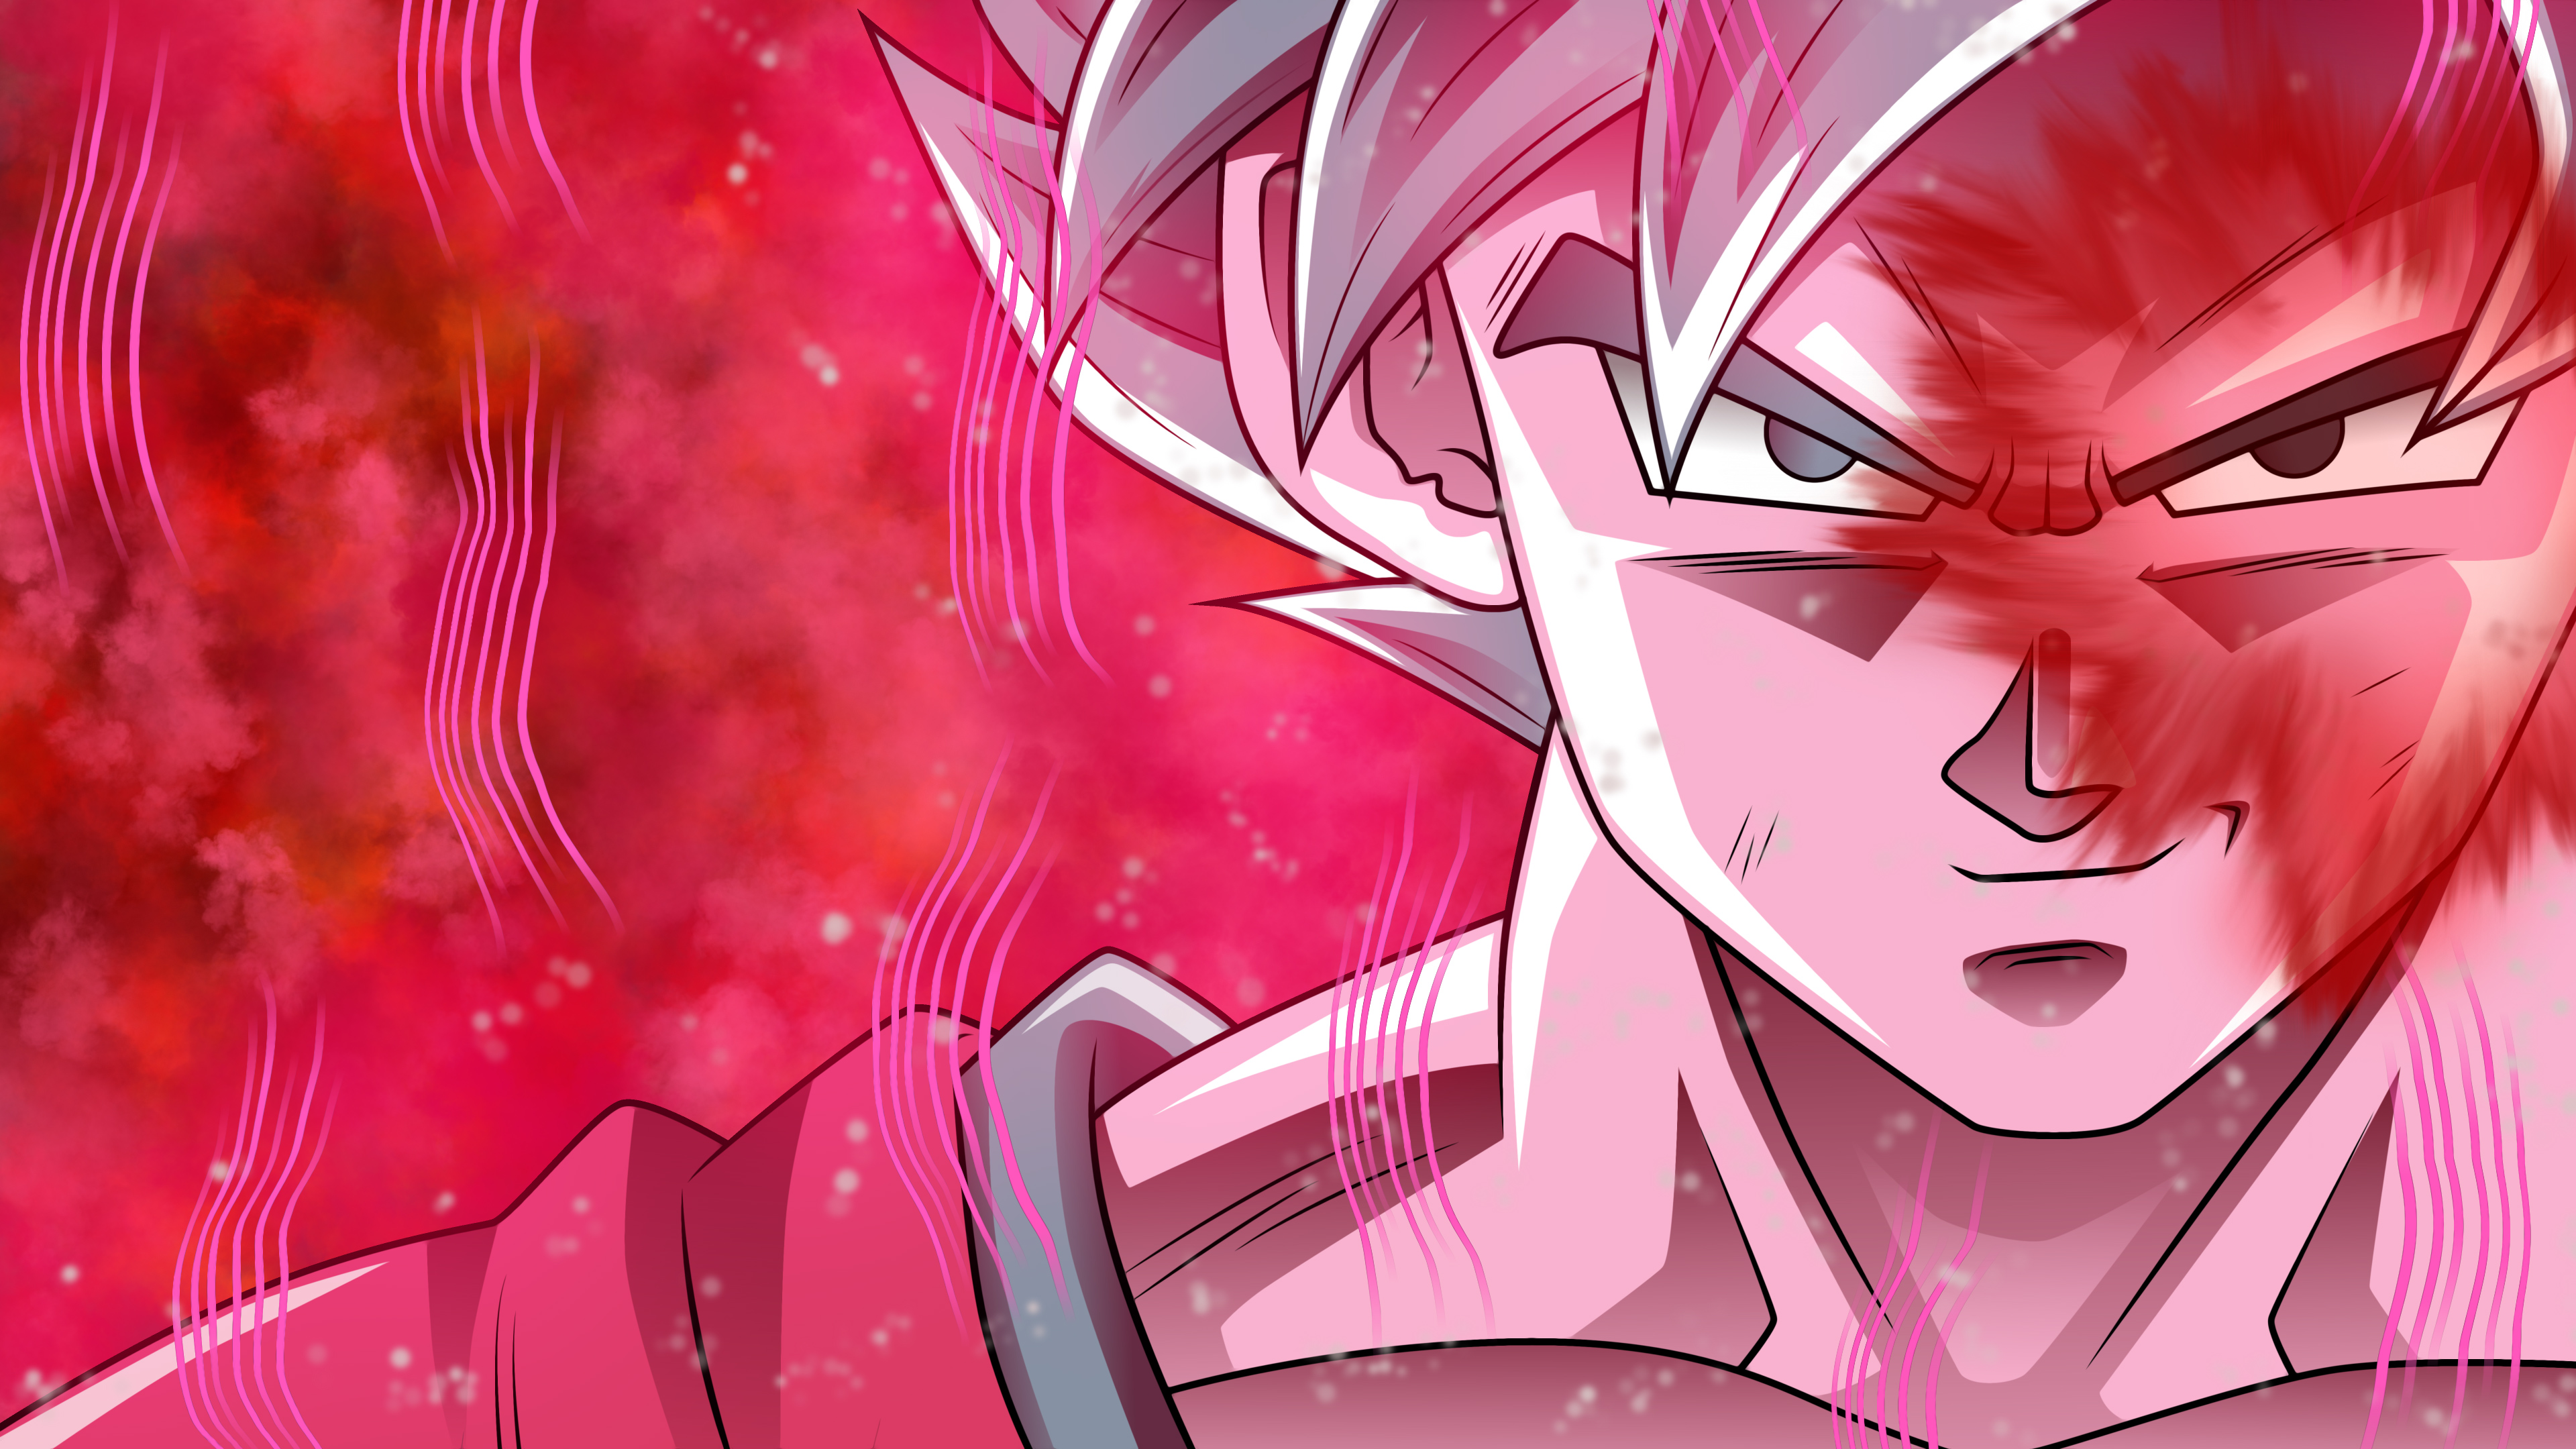 Fondos de pantalla Anime Goku de Dragon Ball Super